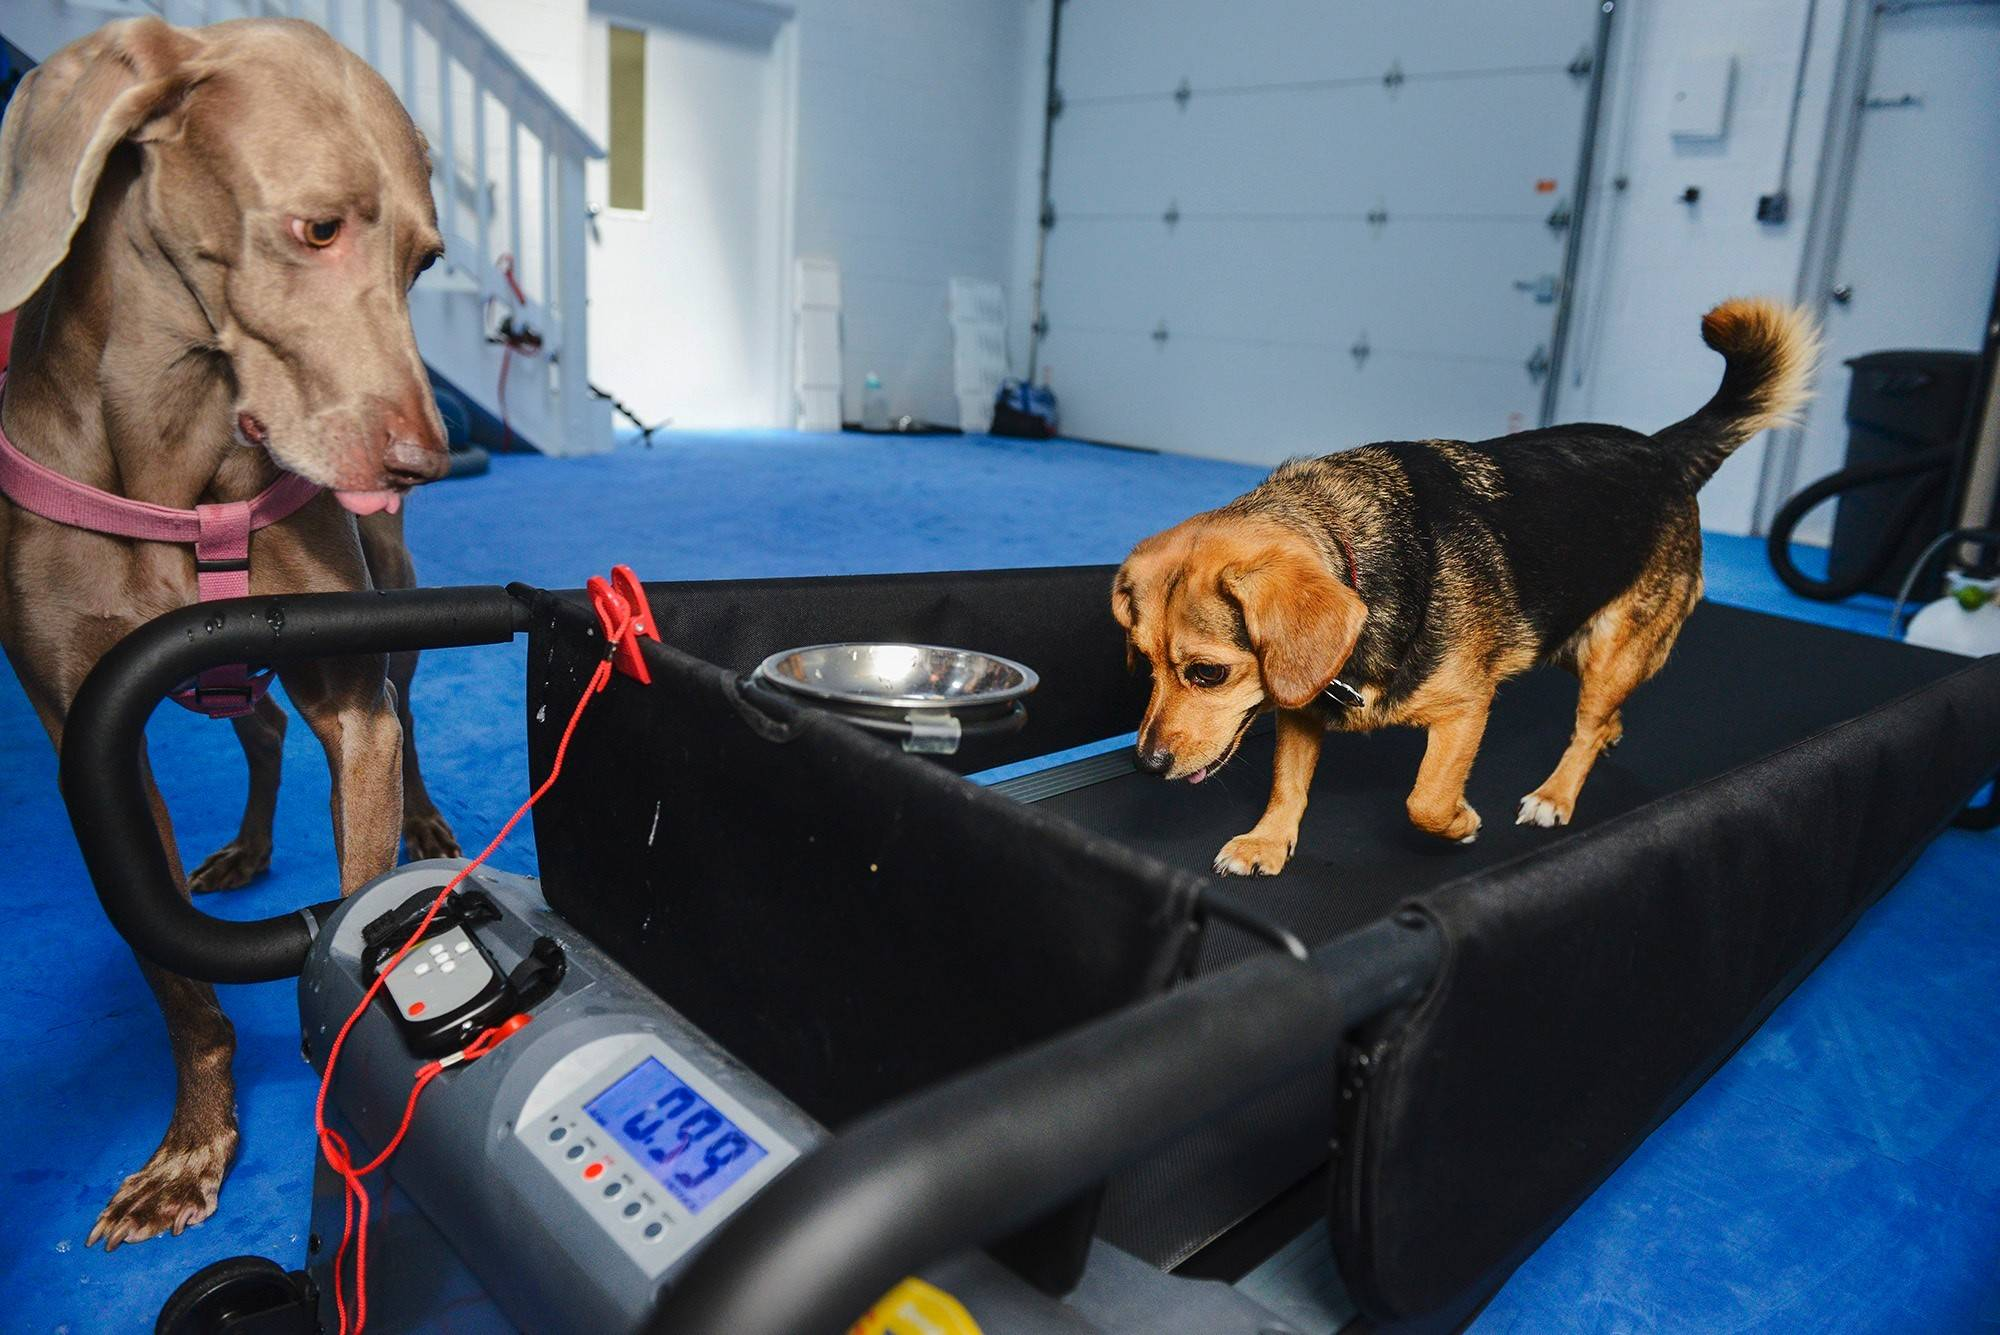 Ruby, a beagle-Chihuahua mix, uses the treadmill. Looking on is Sofie, a 4-year-old Weimaraner.